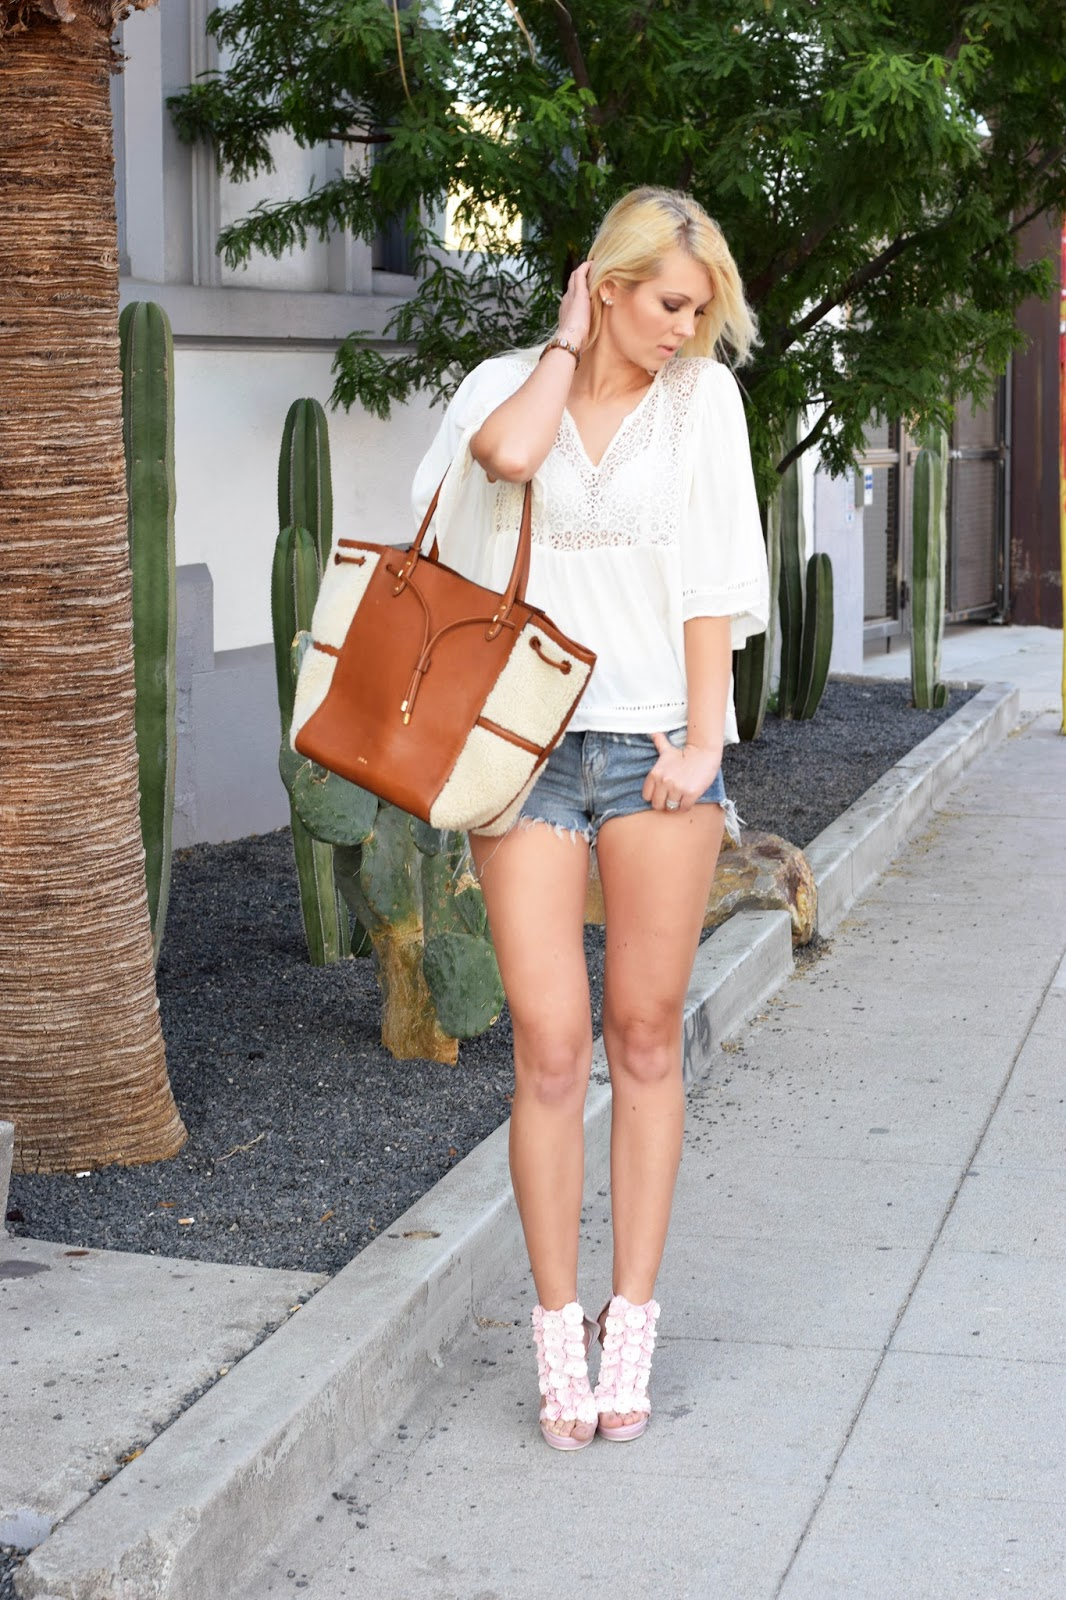 Jeffrey Campbell heels, flower heels, boho style, arts district, los angeles, shorts, summer